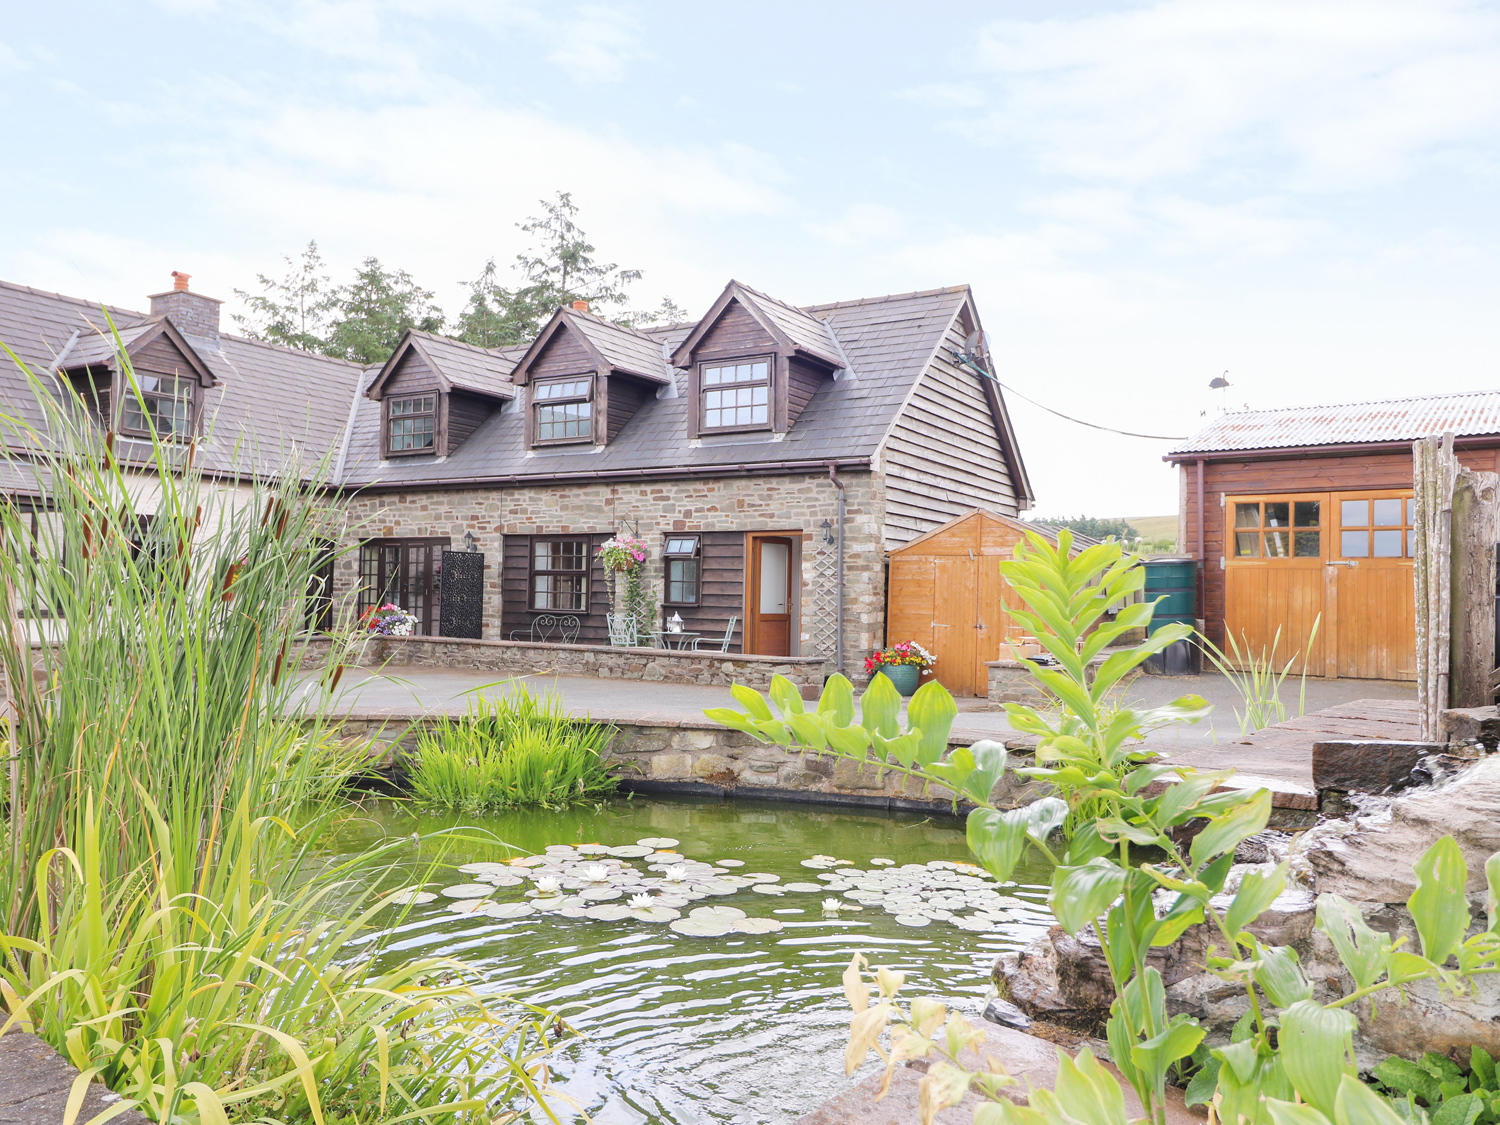 Lily Pond Cottage